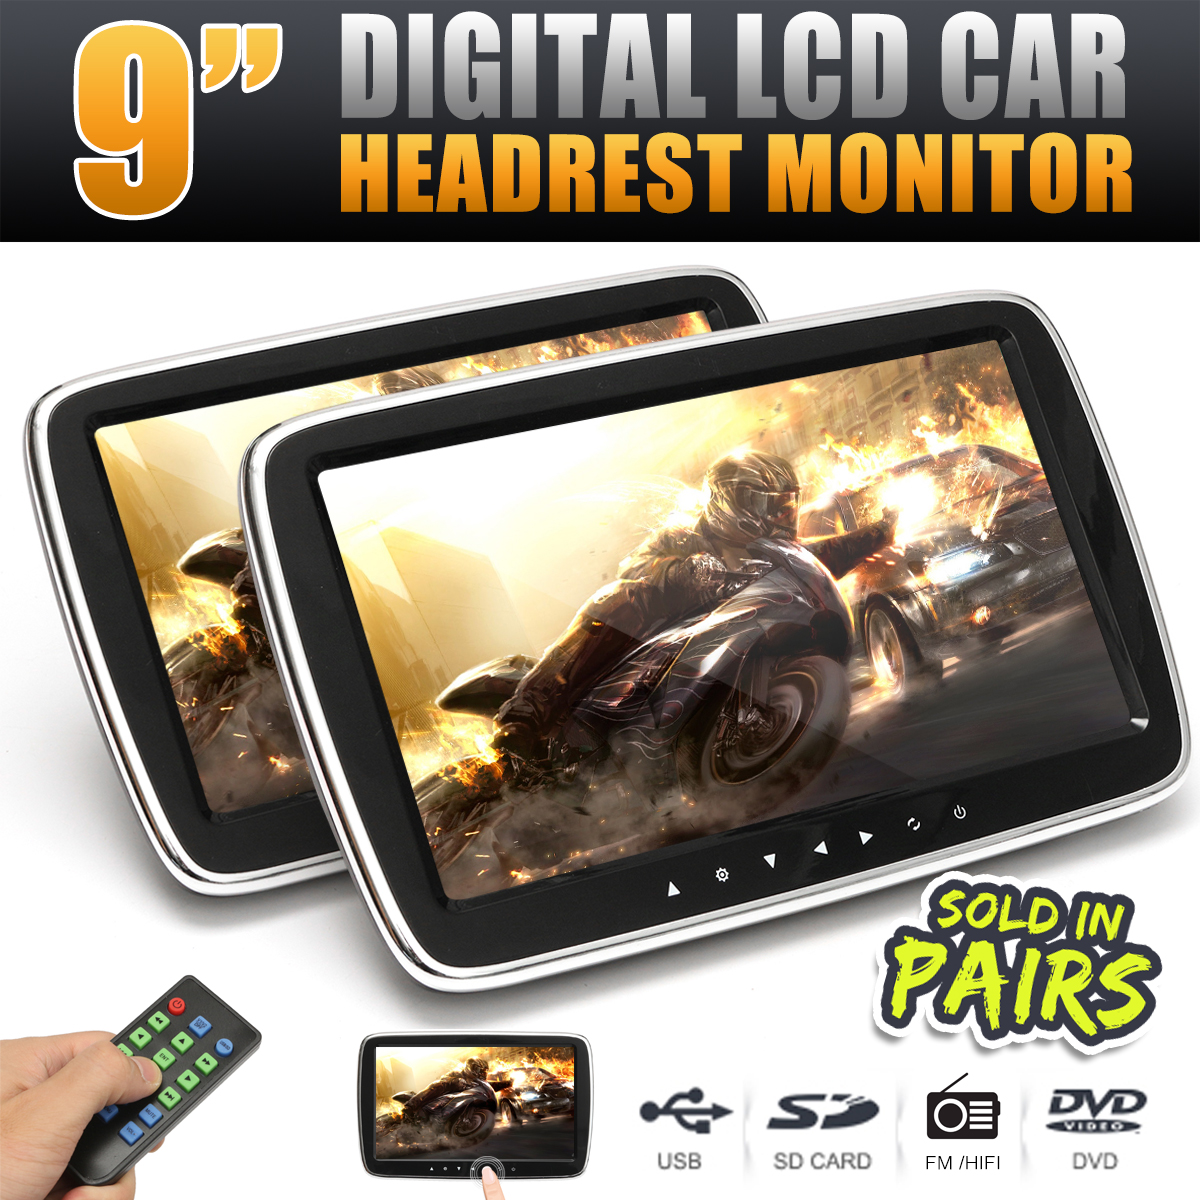 9 Inch HD Digital LCD Screen Car Headrest Monitor Seat Back DVD Video Player MP4 USB SD MP3 FM Speaker Pillow Monitor W/ Remote